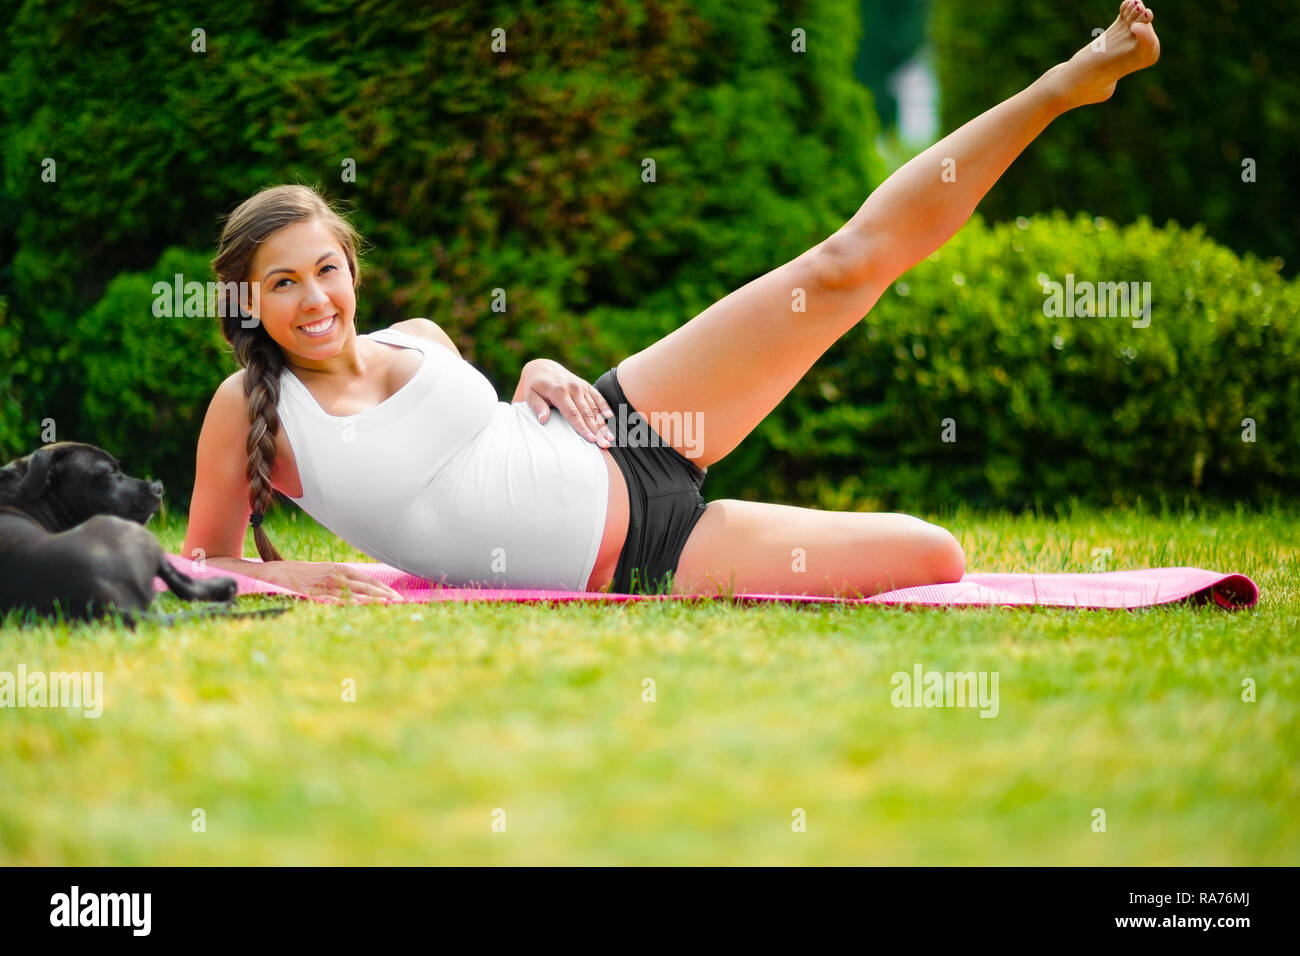 Pregnant Young Woman Performing Side Reclining Leg Lift In Park - Stock Image